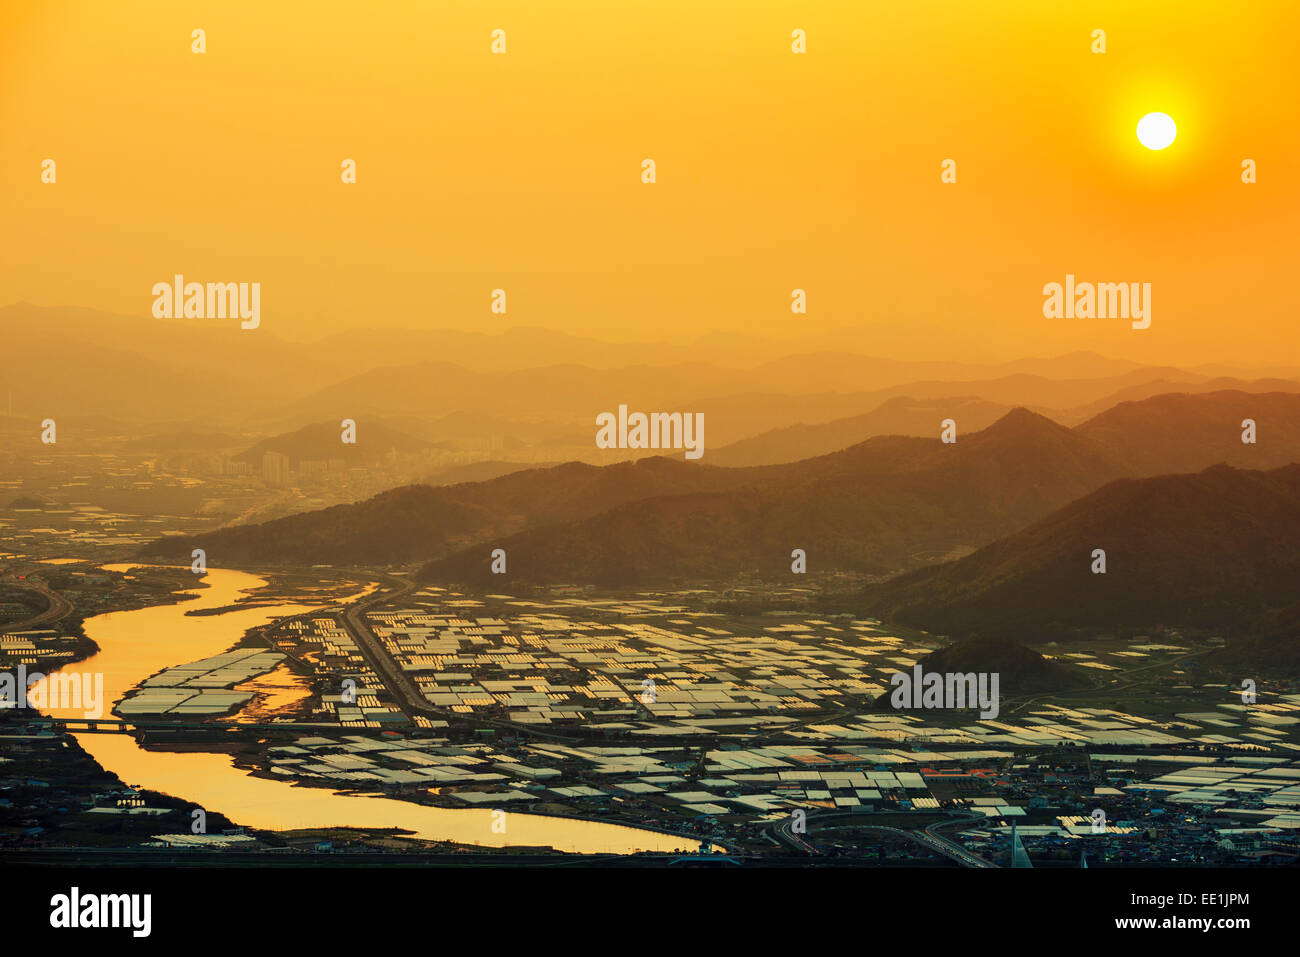 Sunset over city, Busan, South Korea, Asia - Stock Image